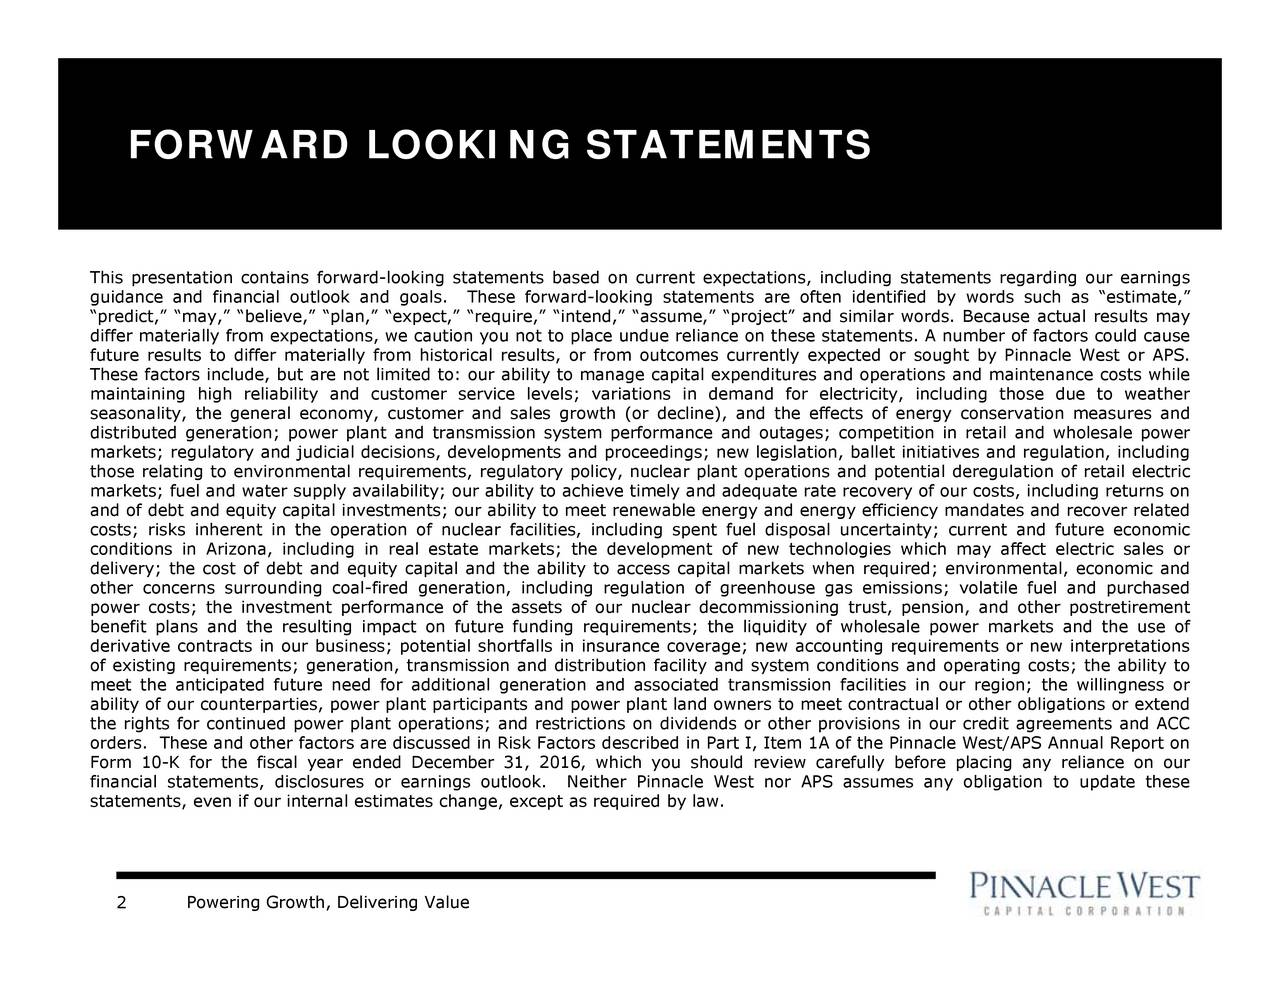 nnacle West/APS Annual Report on l uncertainty; current and future economic ould review carefully before placing any reliance on our apital expenlear plant operations and potential deregulation of retail electricgion; the willingness or rrent eue reliance on thesmely and adequatements; the liquidity of wholesale power markets and the use of tions in demand for electricity, includplant land owners to meet contractual or other obligations or extend gulatiorance coverage; ner Pinnacle West nor APS assumes any obligation to update these rom outcomes currently expected or sought by Pinnacle West or APS. ar facilities, including spent fuel disposa er and sales growth (or decline), and the effects of energy conservation measures andr n, expect, require, intend, assume, project and similar words. Because actual results may Powering Growth, Delivering Value FORWARD LOOKING STATEMENTS 2 This presentation contains forwarcondelieeow;nrnfeztltesfariuatismiicoaiifresnitalatpotonhiarclfddtailrenein words such as estimate,